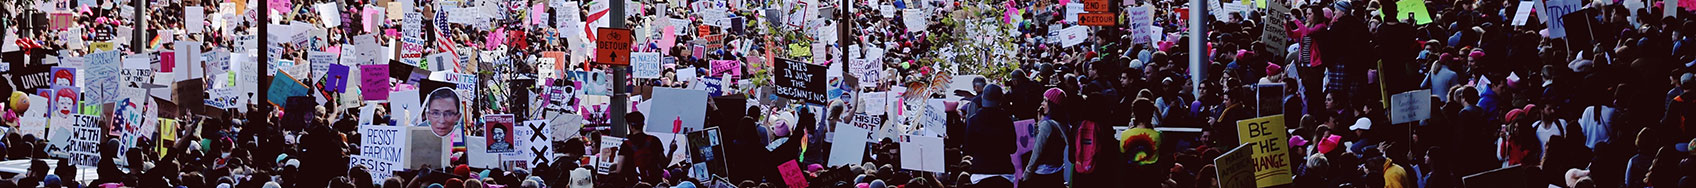 "Header image for the top of the ""In the News"" page. Crowd scene of people bring attention to women's rights."